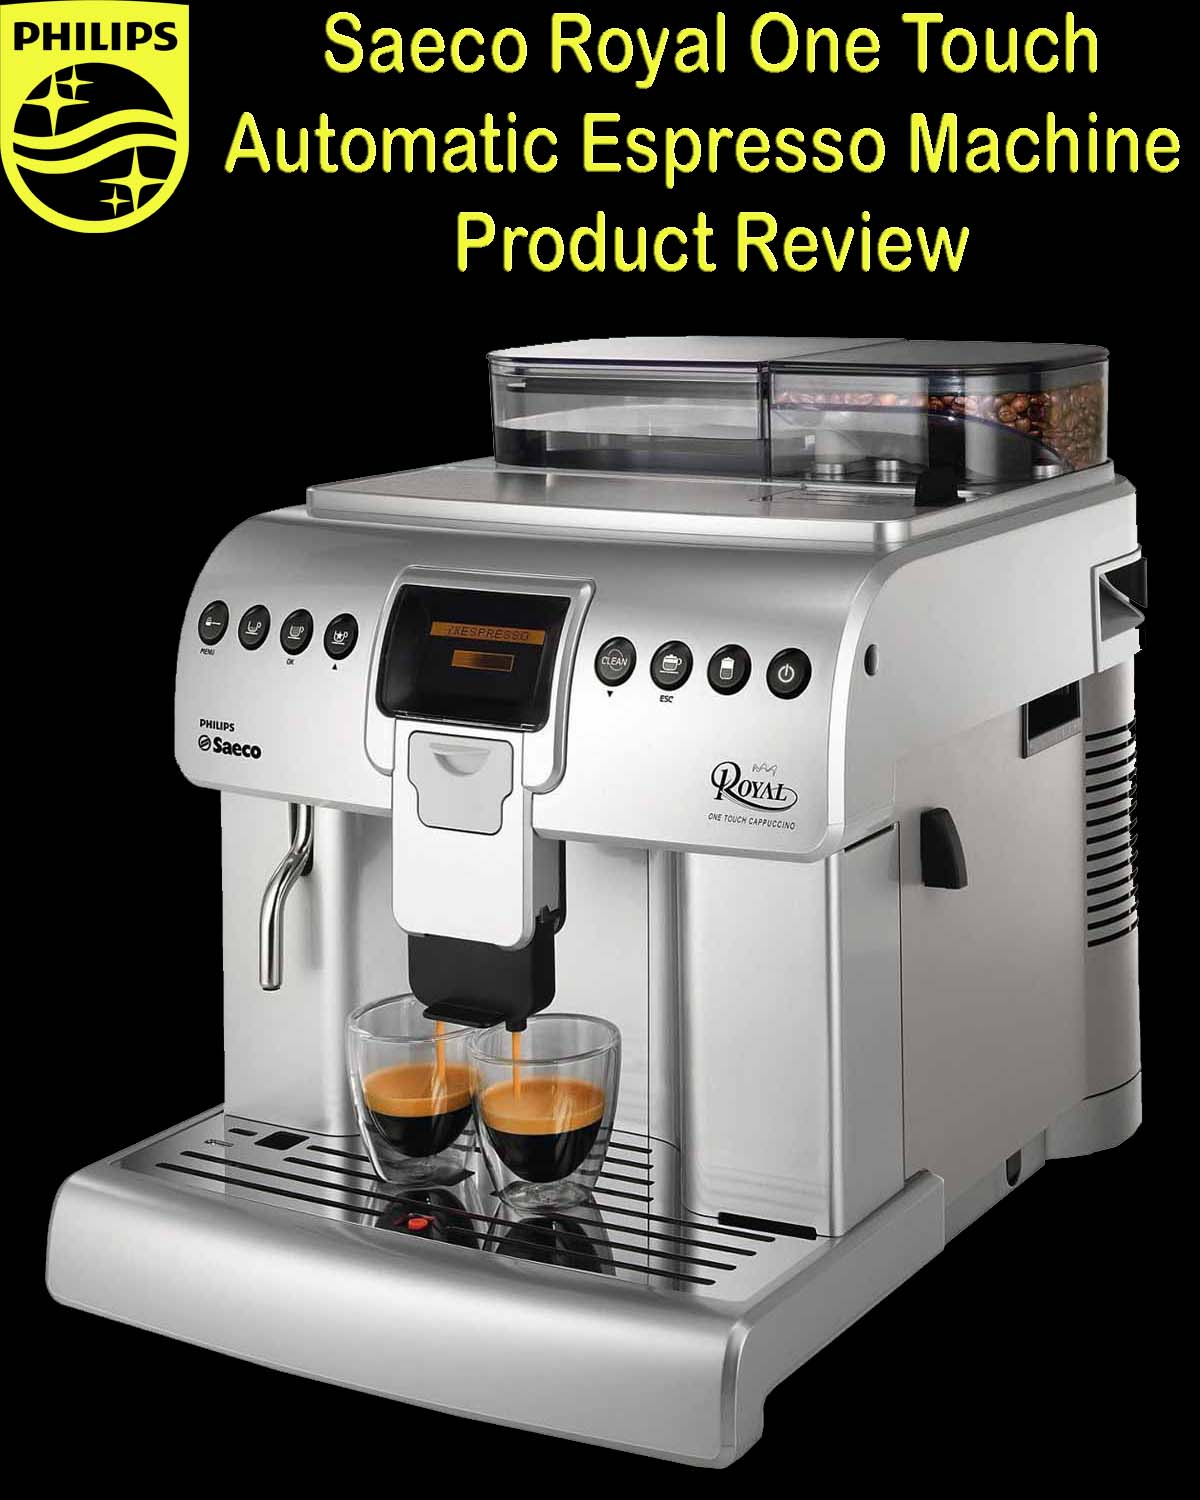 Philips Saeco Royal One Touch Cappuccino Automatic Espresso Machine Product Review